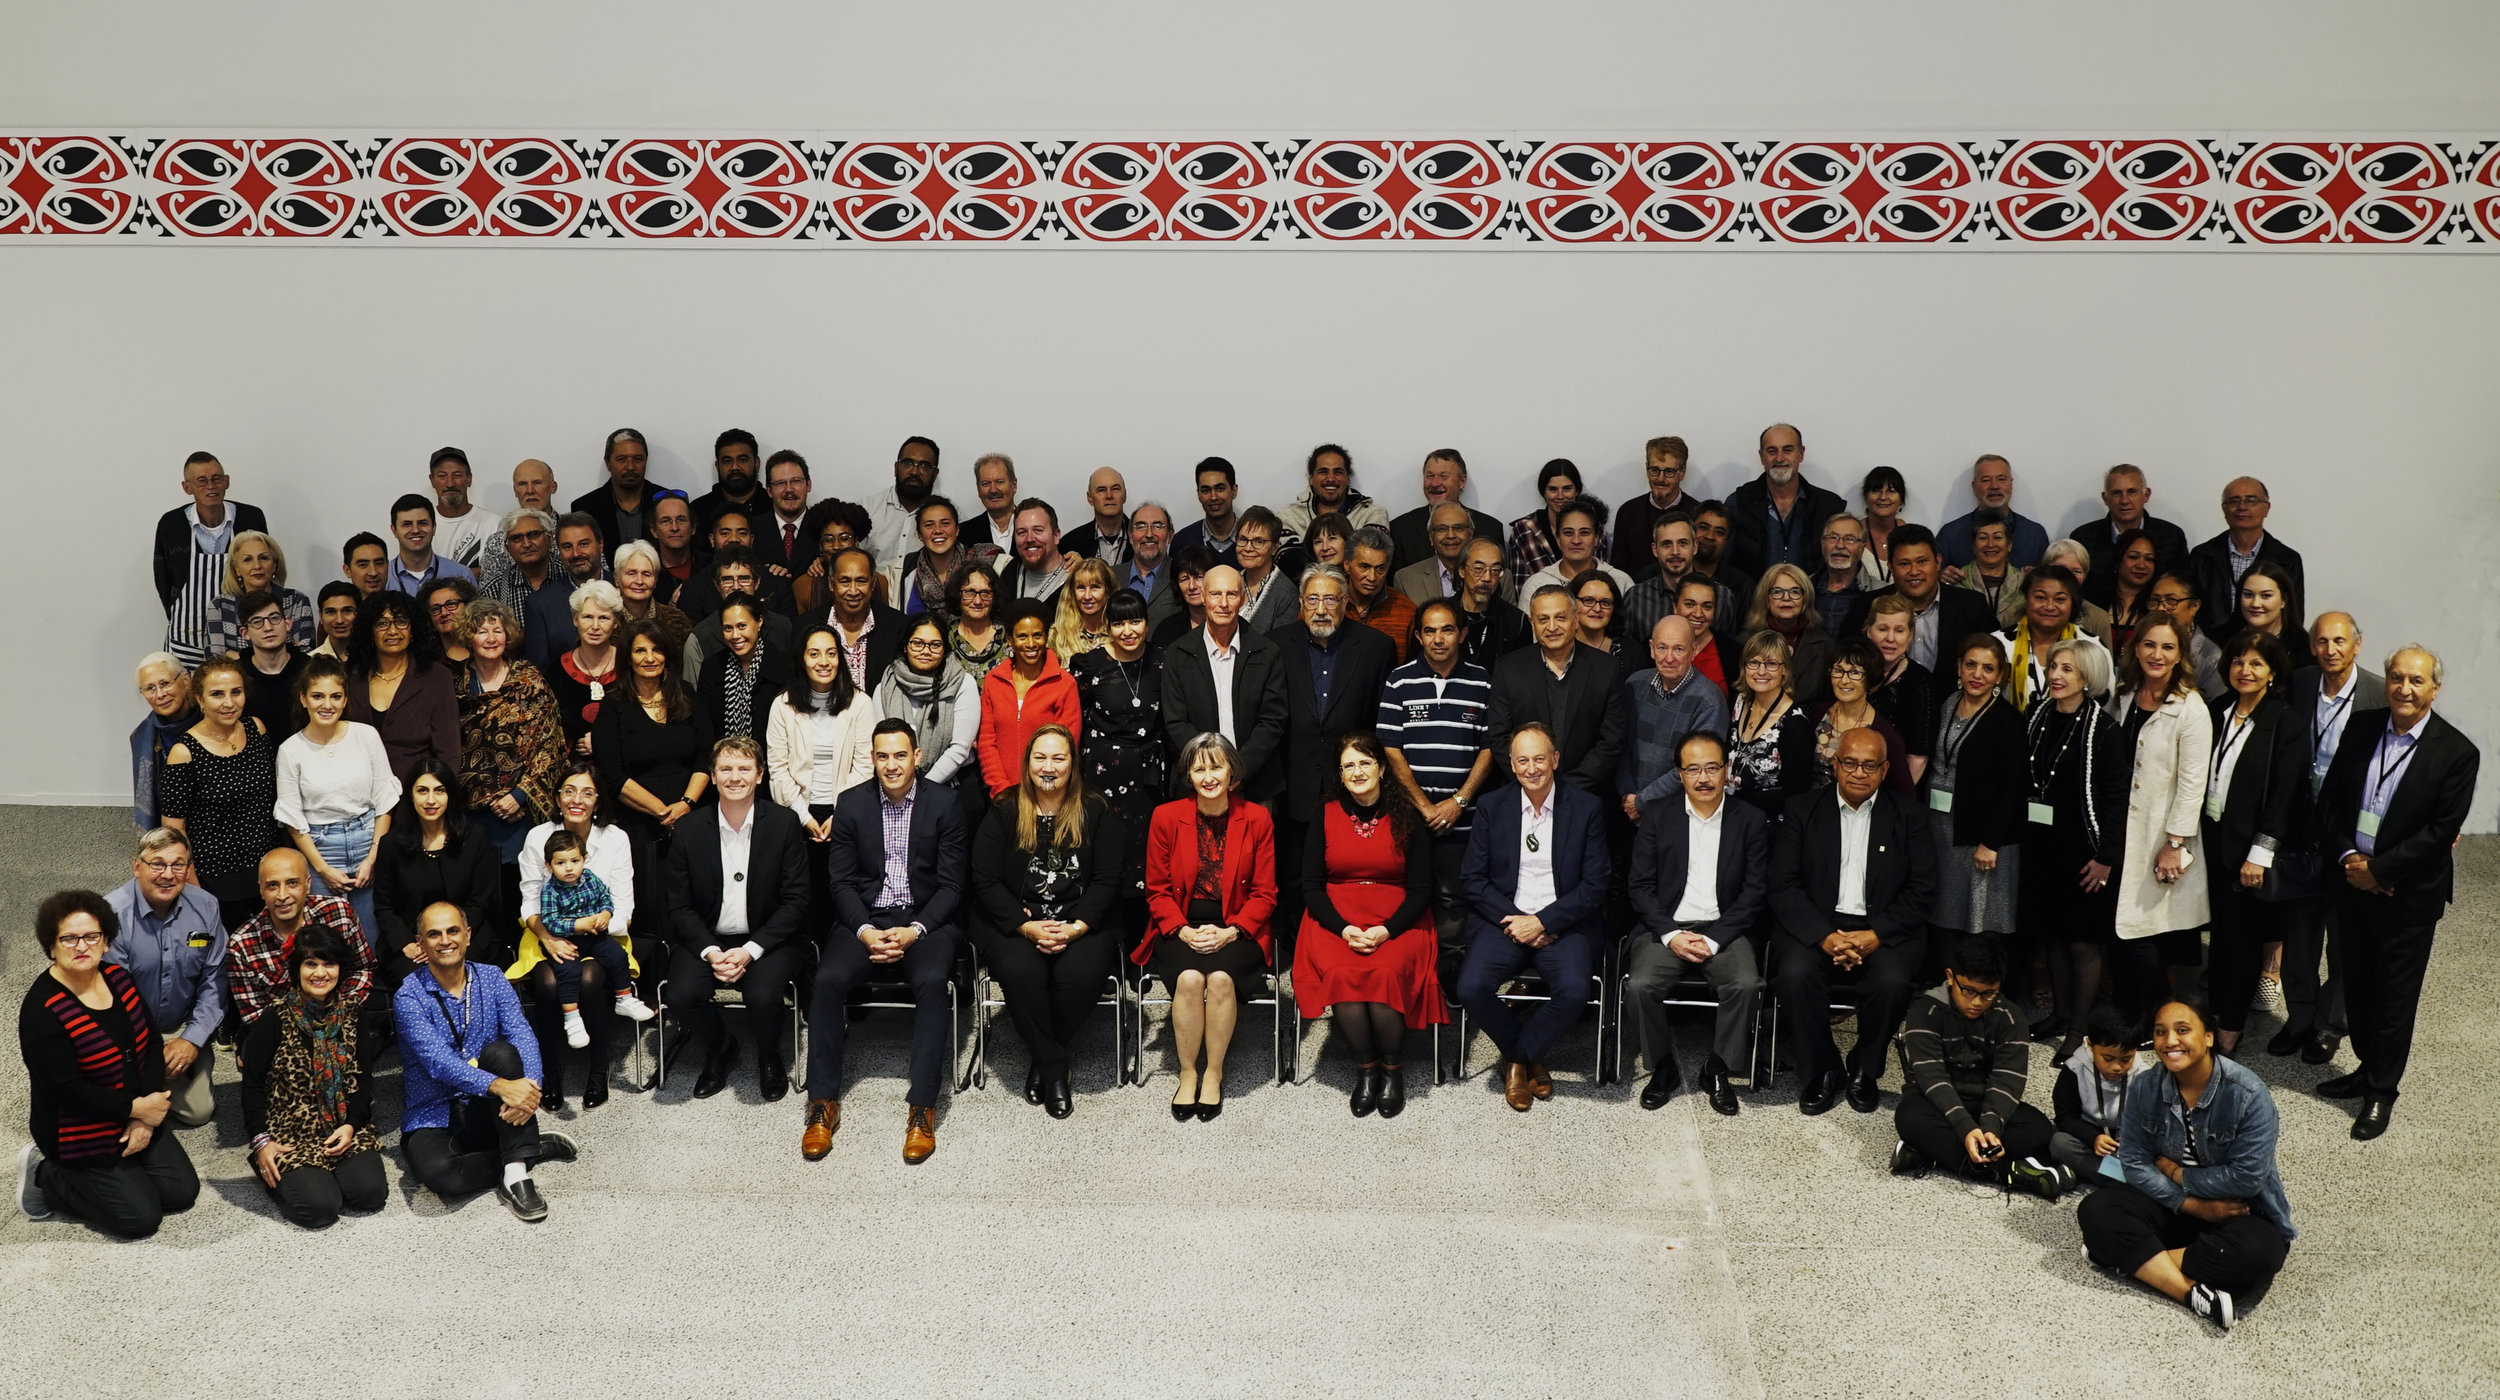 National Convention Delegates, Members of Institutions, and Observers